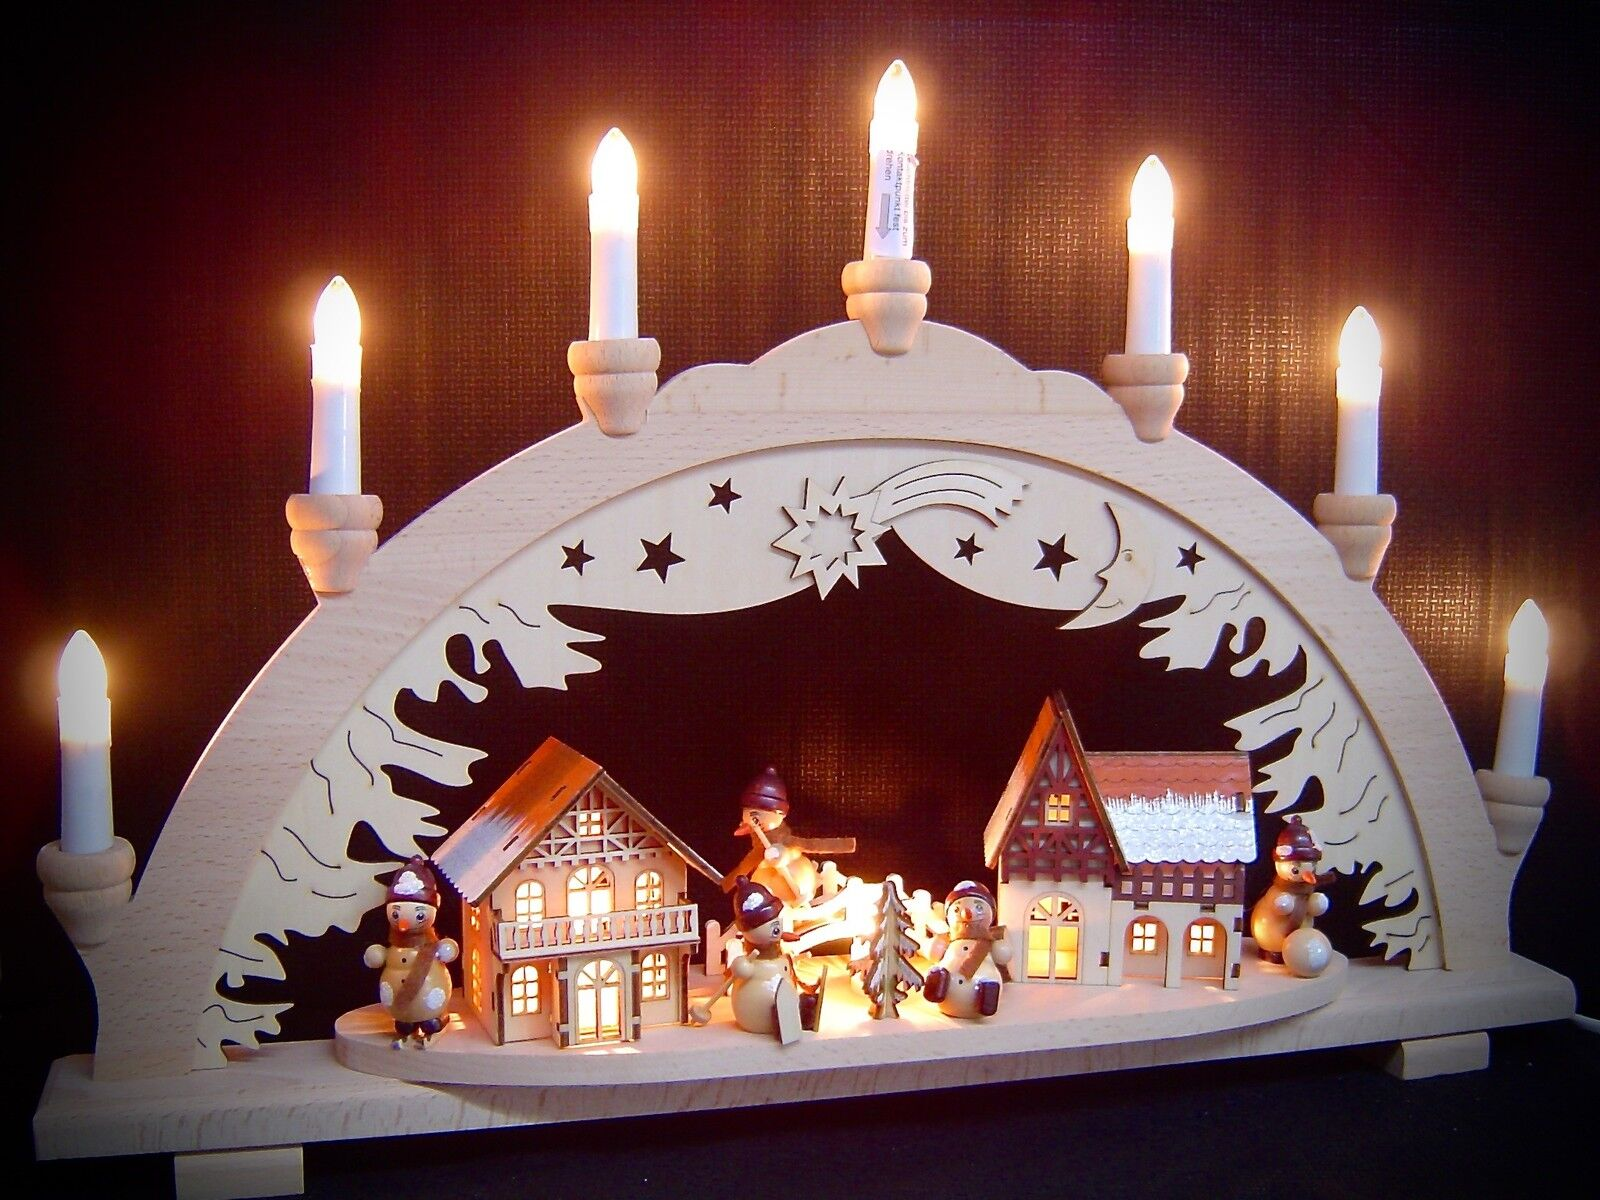 Light Arch 3D Snowman City 5 Figures 57x38 cm 10 Lights 10171